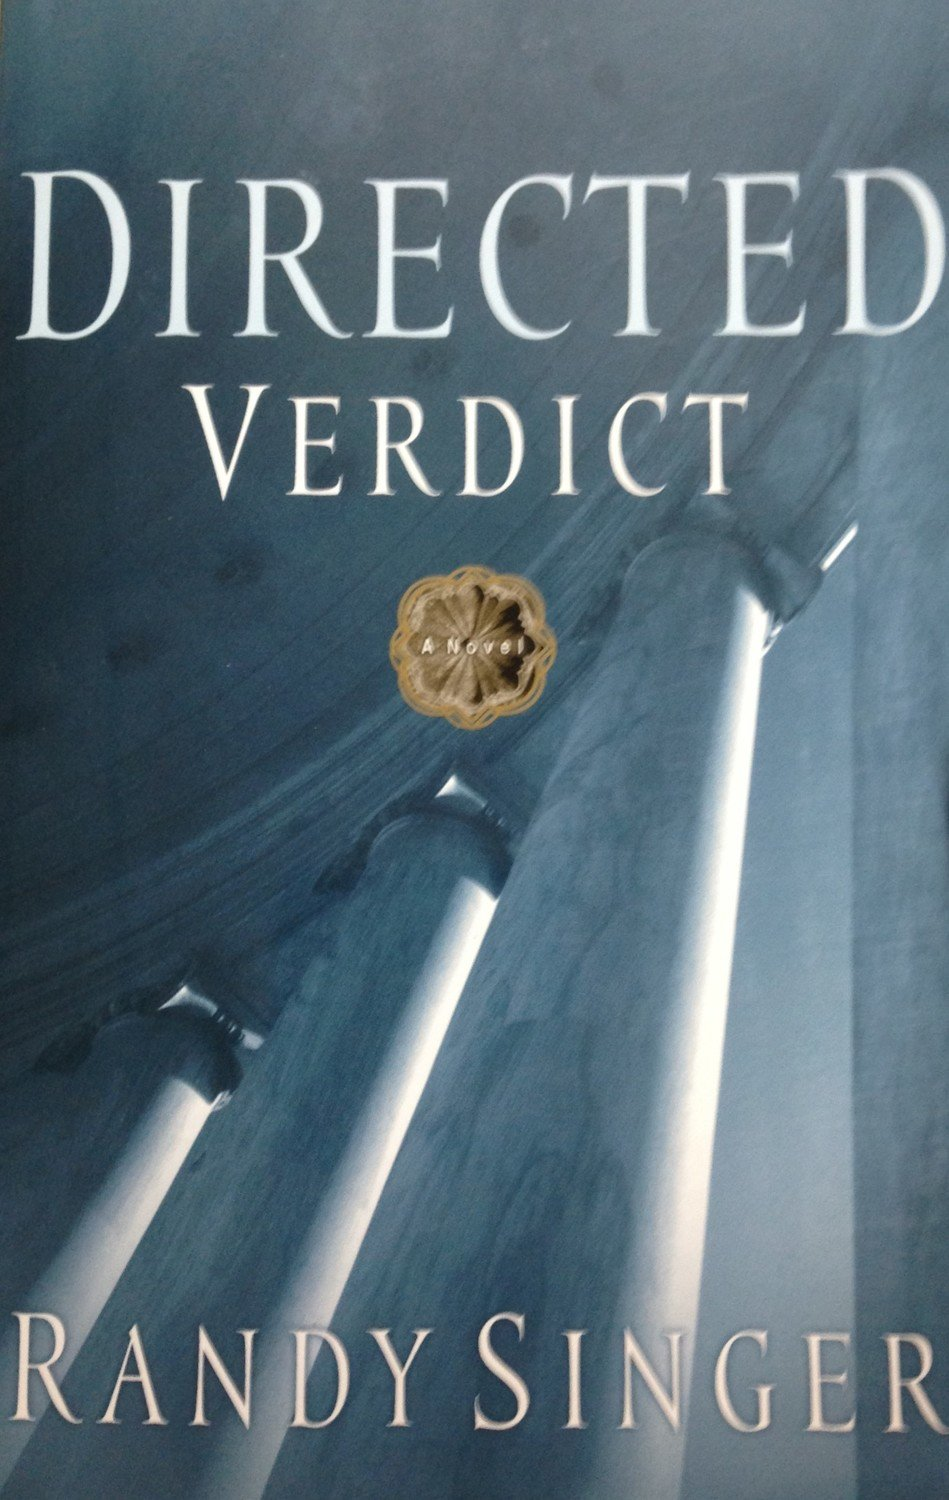 Directed Verdict by Randy Singer (Paperback)